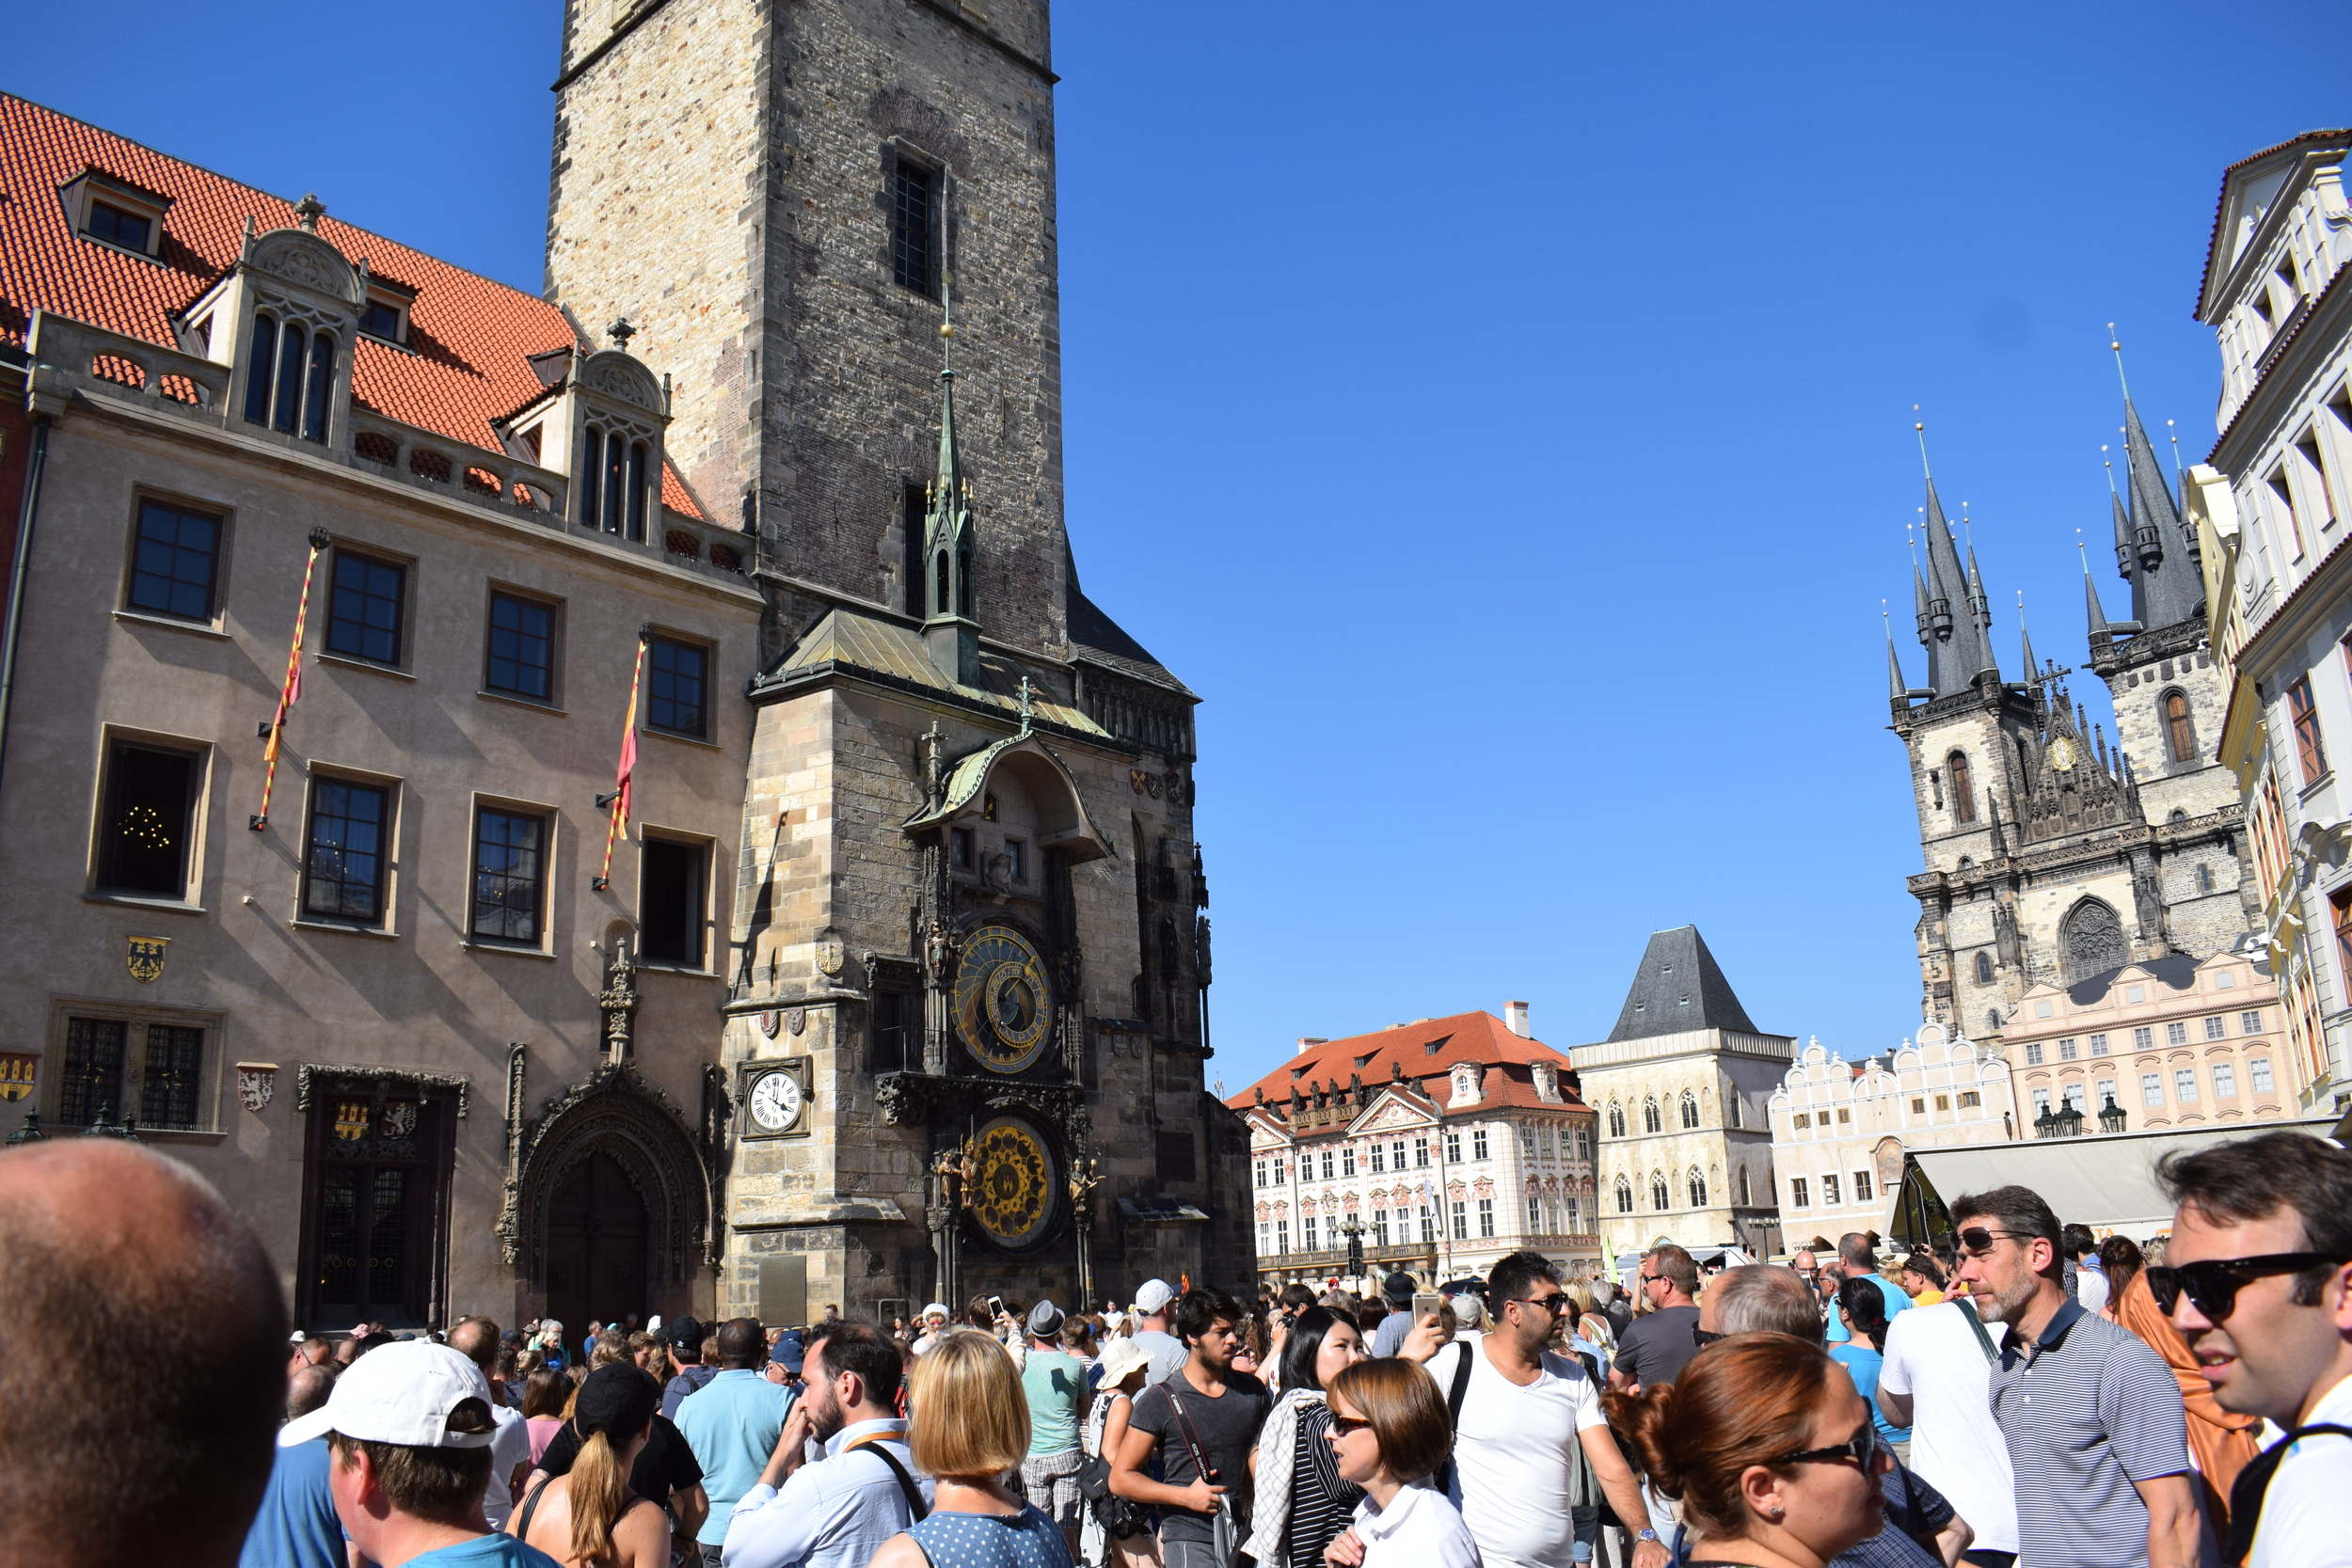 Masses of people flock to the Astronomical Clock just before the hour to witness it chime.